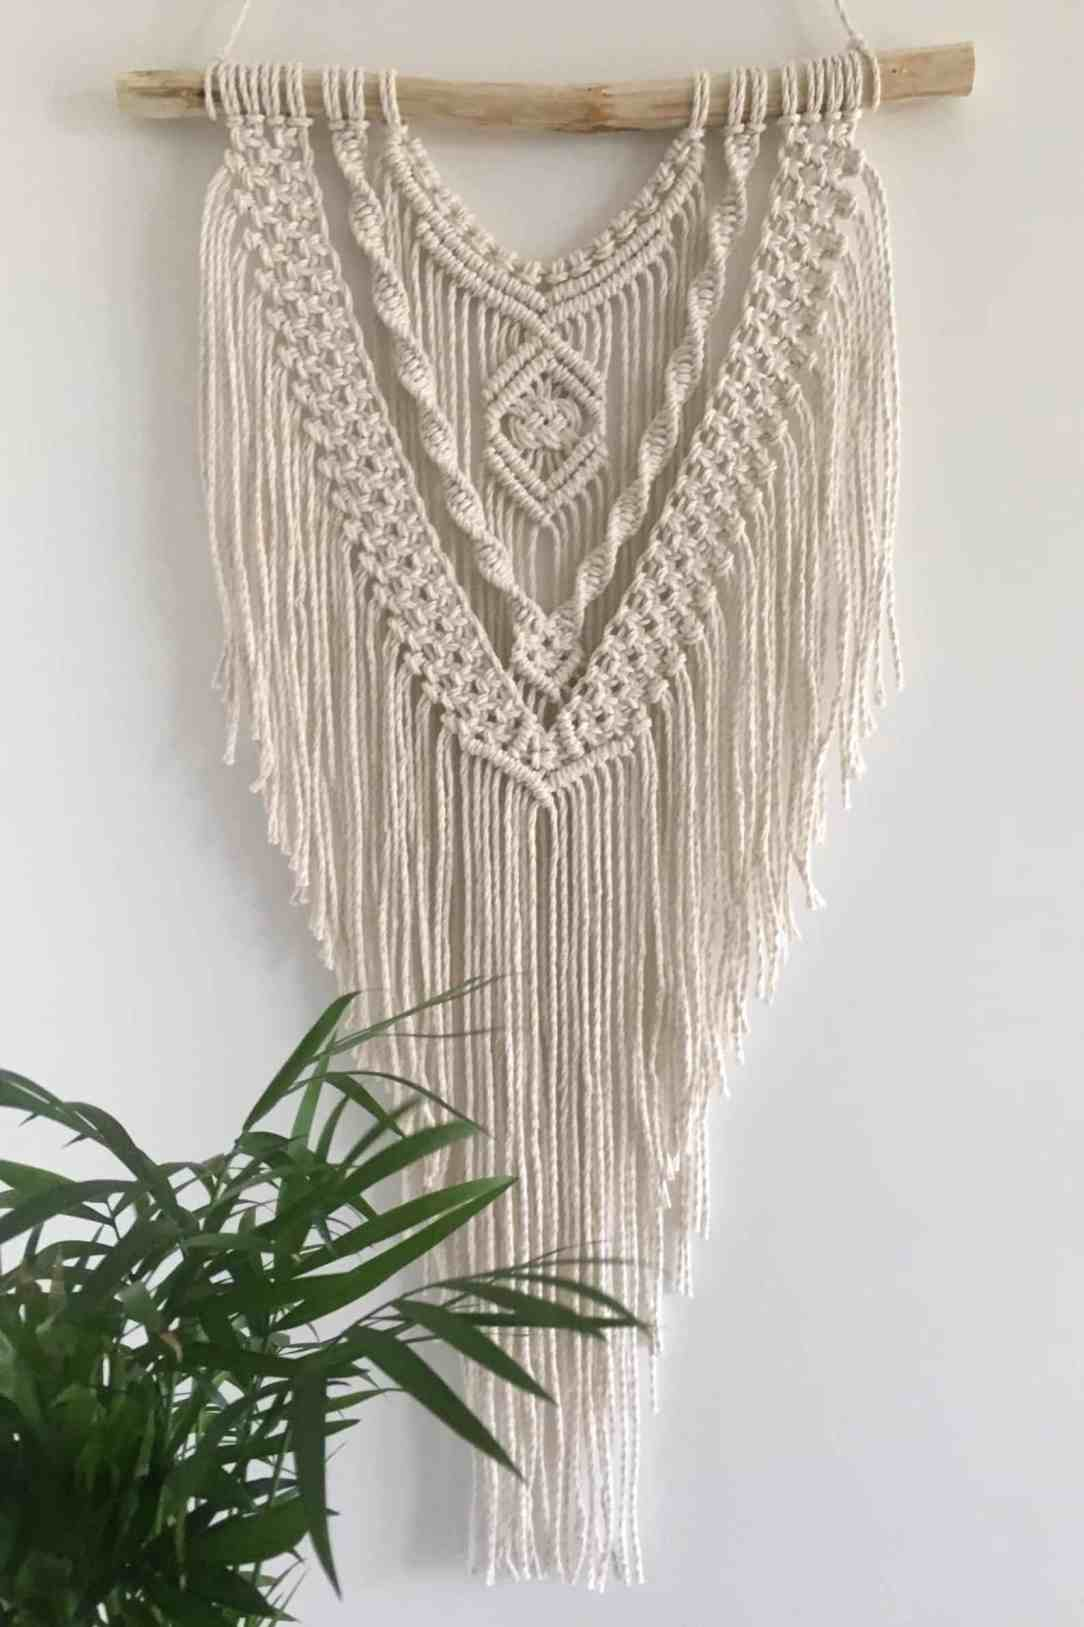 macrame made by me